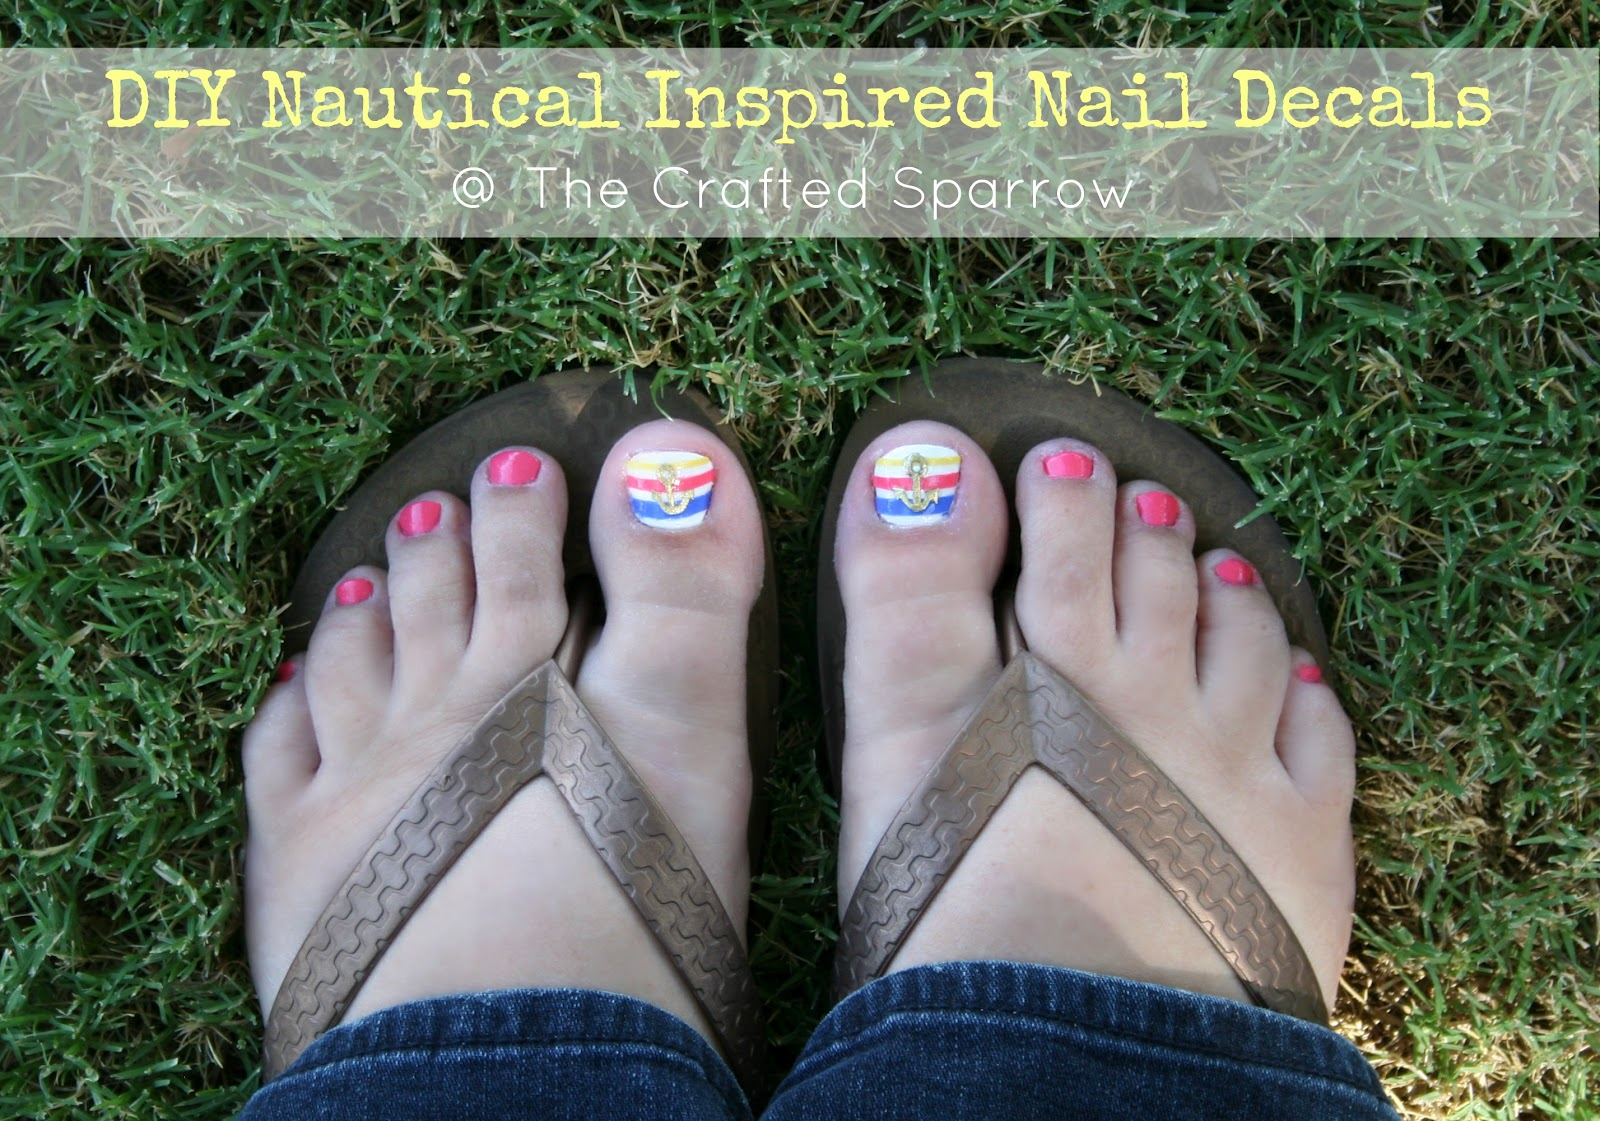 DIY Nautical Inspired Nail Decals - The Crafted Sparrow